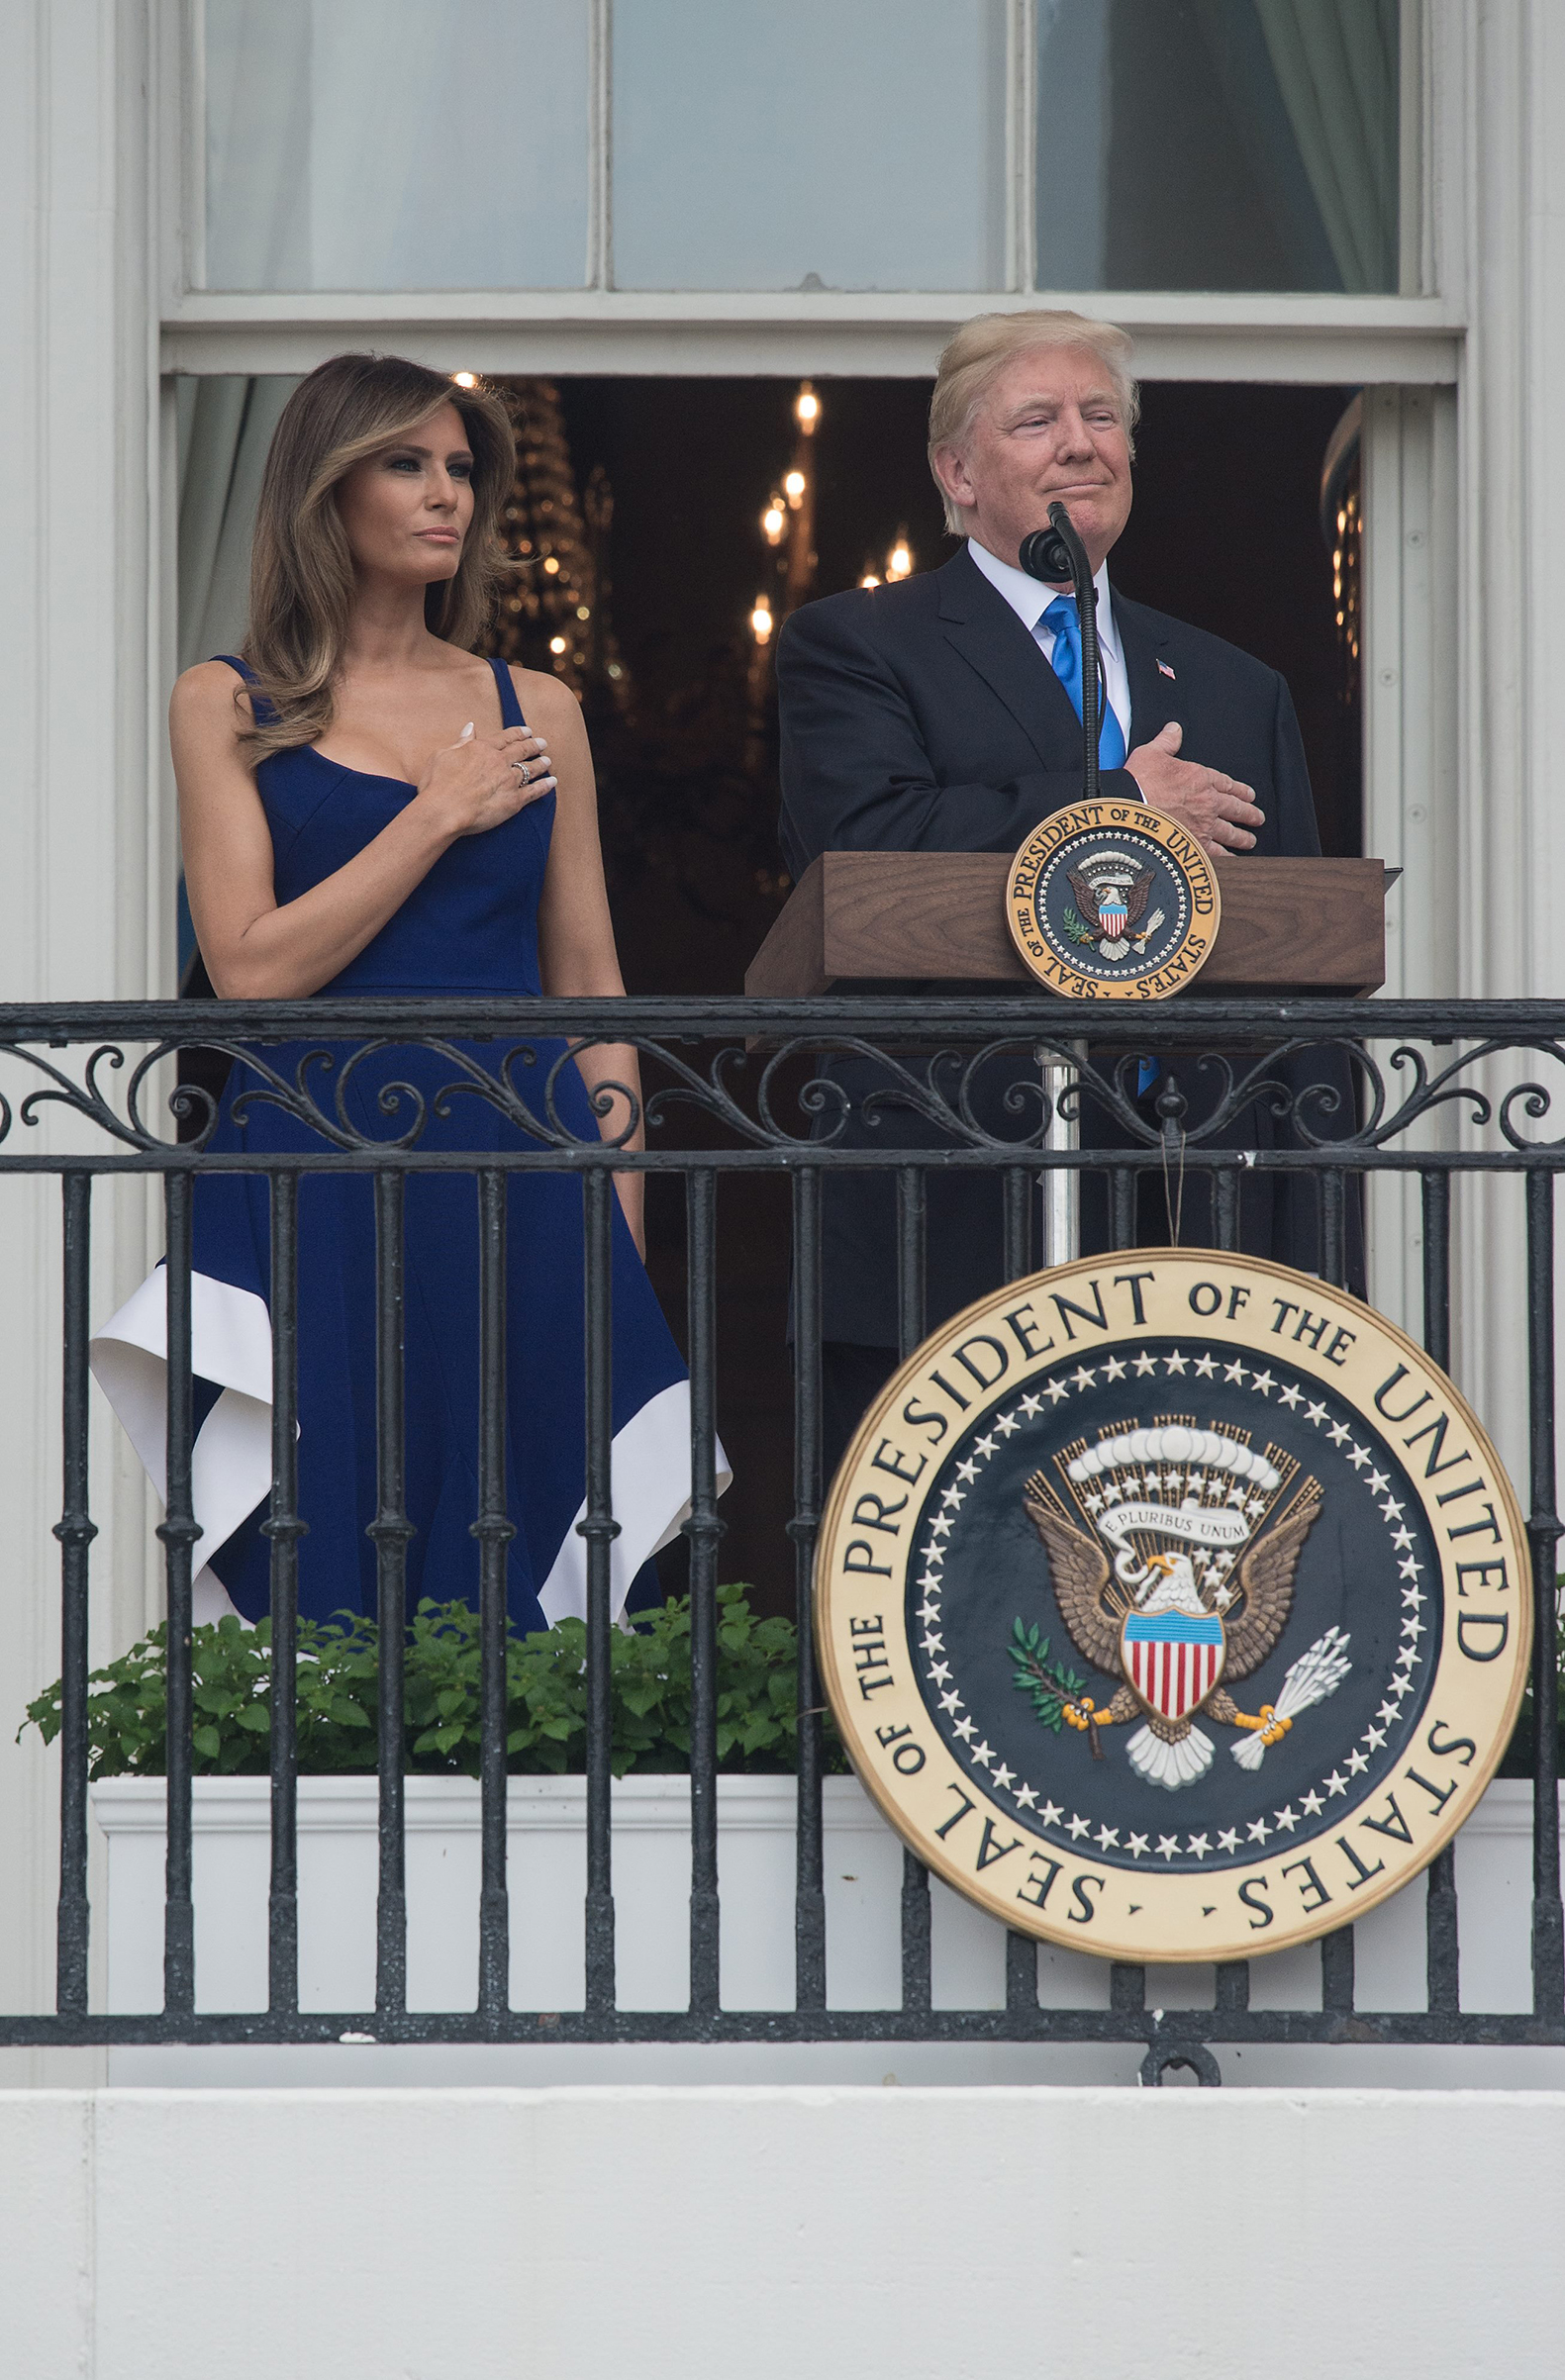 President Donald Trump and first lady Melania Trump,   wearing a blue and white dress by designer Esteban Cortázar, listen to the national anthem during the military families picnic at the White House in Washington, D.C, on July 4, 2017.